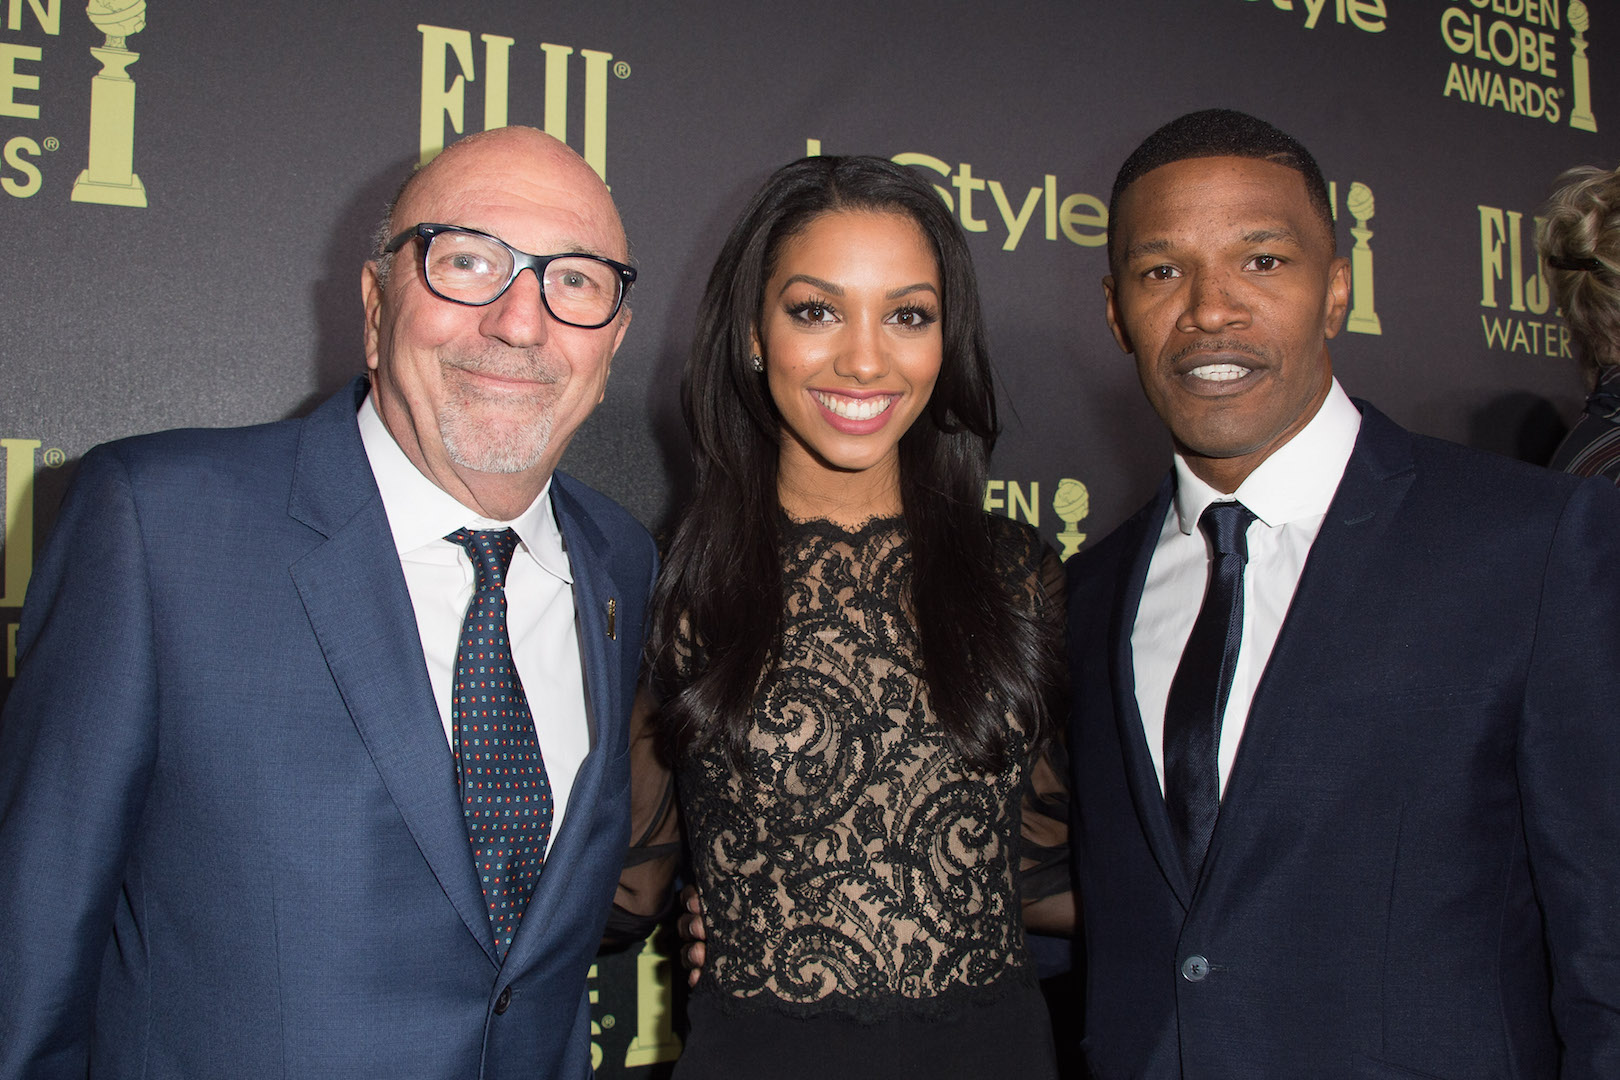 HFPA President Lorenzo Soria, Corinne Foxx, Miss Golden Globe 2016, and Jamie Foxx attend a party for the announcement of Corinne Foxx as Miss Golden Globe 2016 for the 73rd Annual Golden Globe Awards set to air live on NBC on January 10, 2016.President Lorenzo Soria made the announcement on November 17, 2015 from Ysabel Restaurant in West Hollywood.